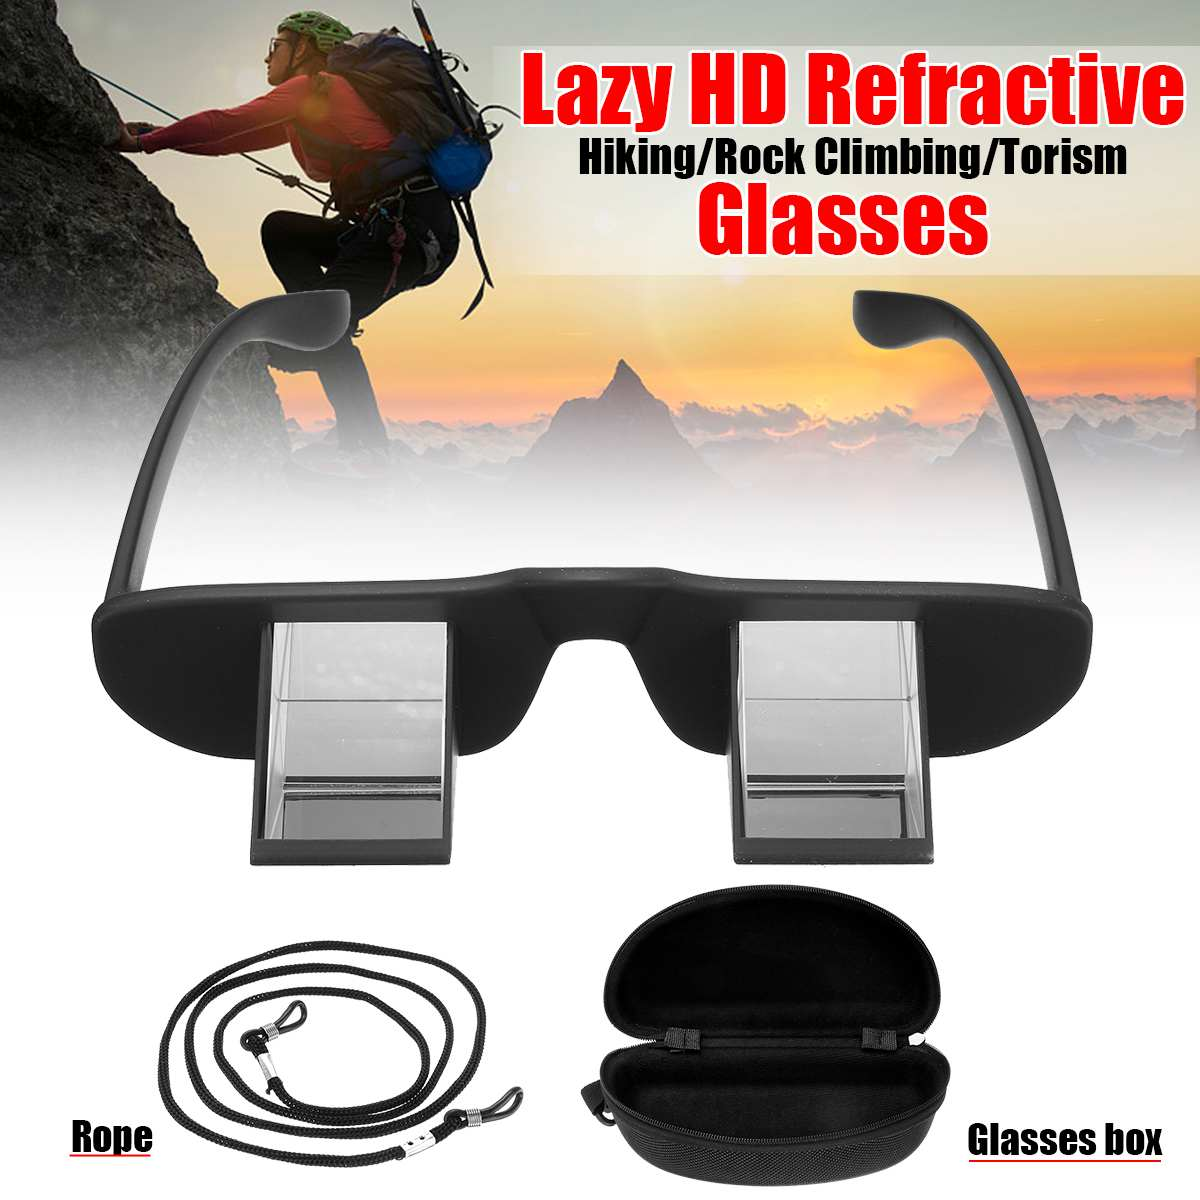 Lazy Refractive Glasses+Box+Rope Climbing Goggles Prism Spectacles Watching TV Great Choice For Hiking Rock Climbing Tourism